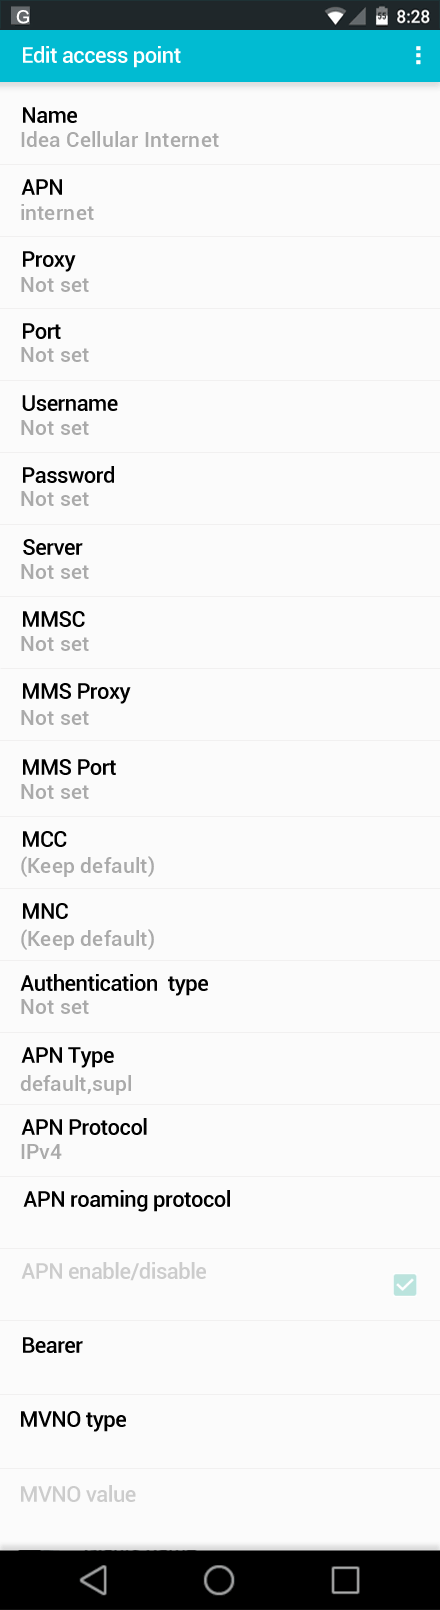 Idea Cellular Internet APN settings for Android